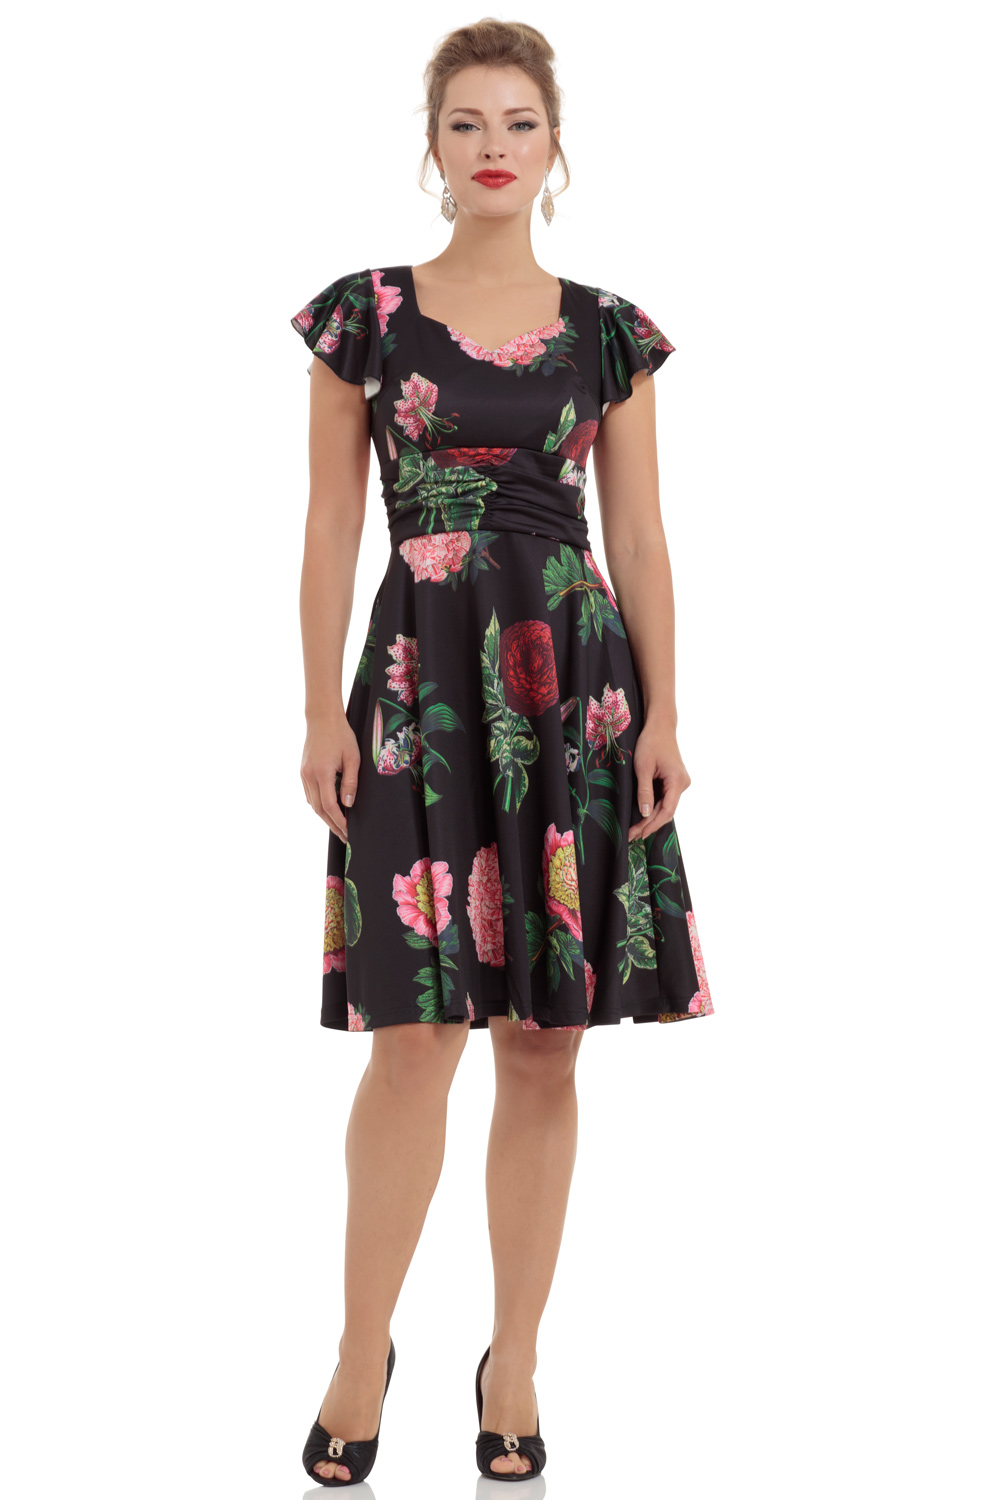 Mabel Black Floral Flare Dress